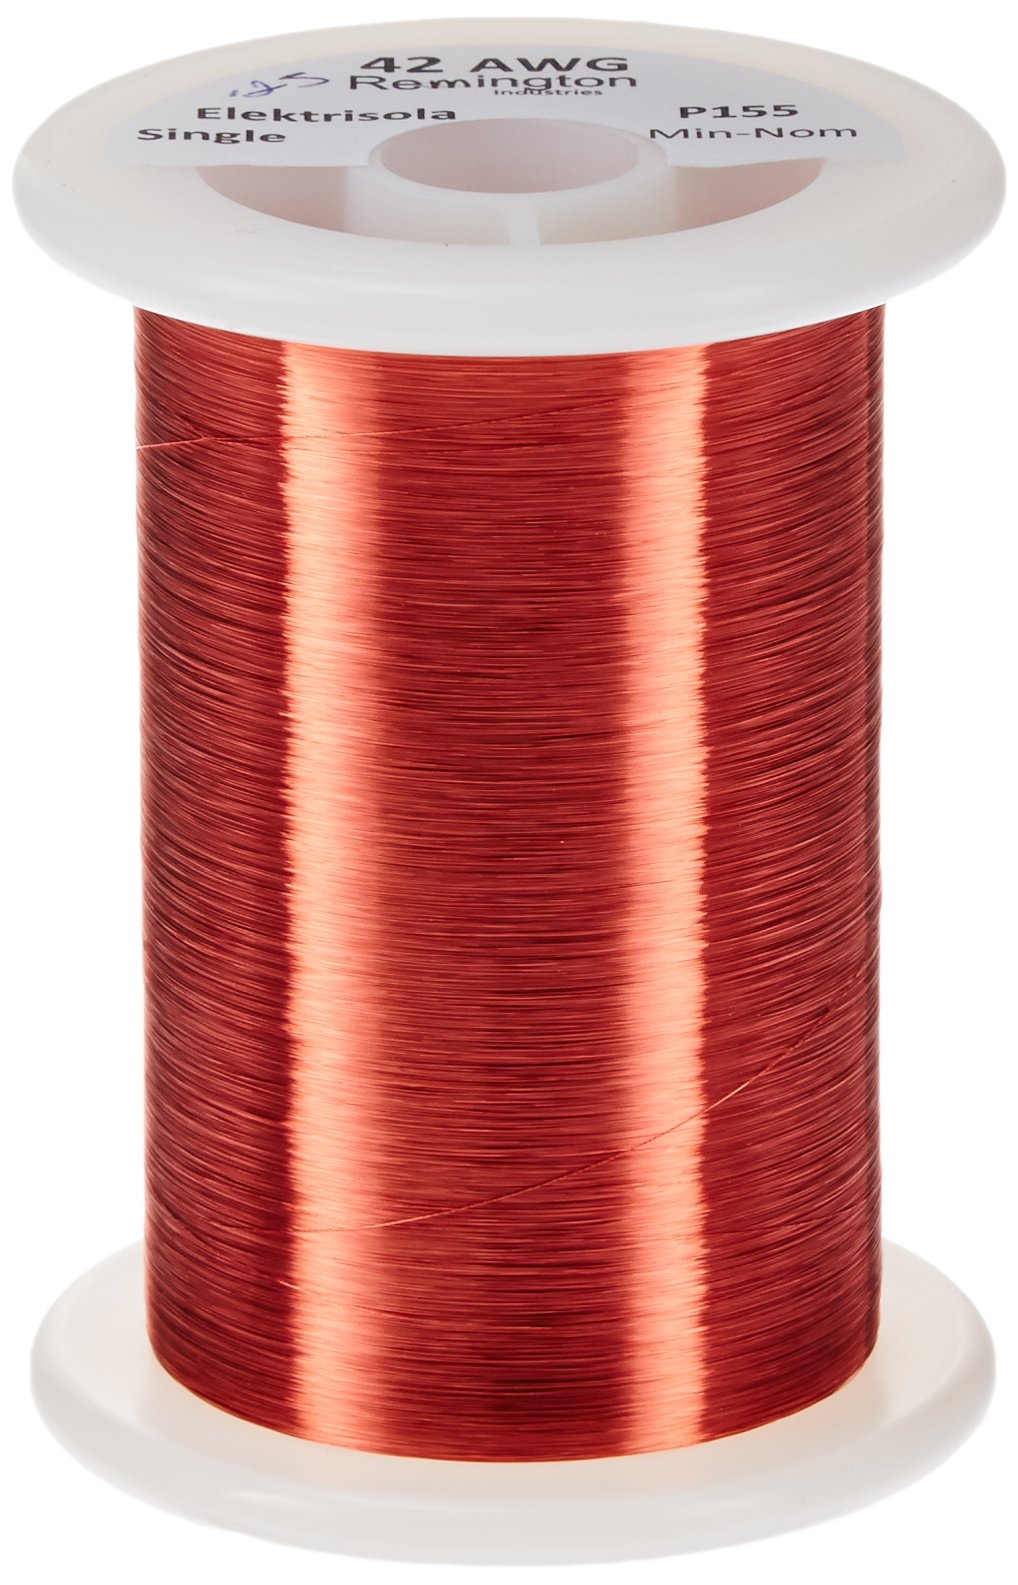 Remington Industries 42SNSPR.25 42 AWG Magnet Wire, Enameled Copper Wire, 4 oz, 0.0026'' Diameter, 12828' Length, Red